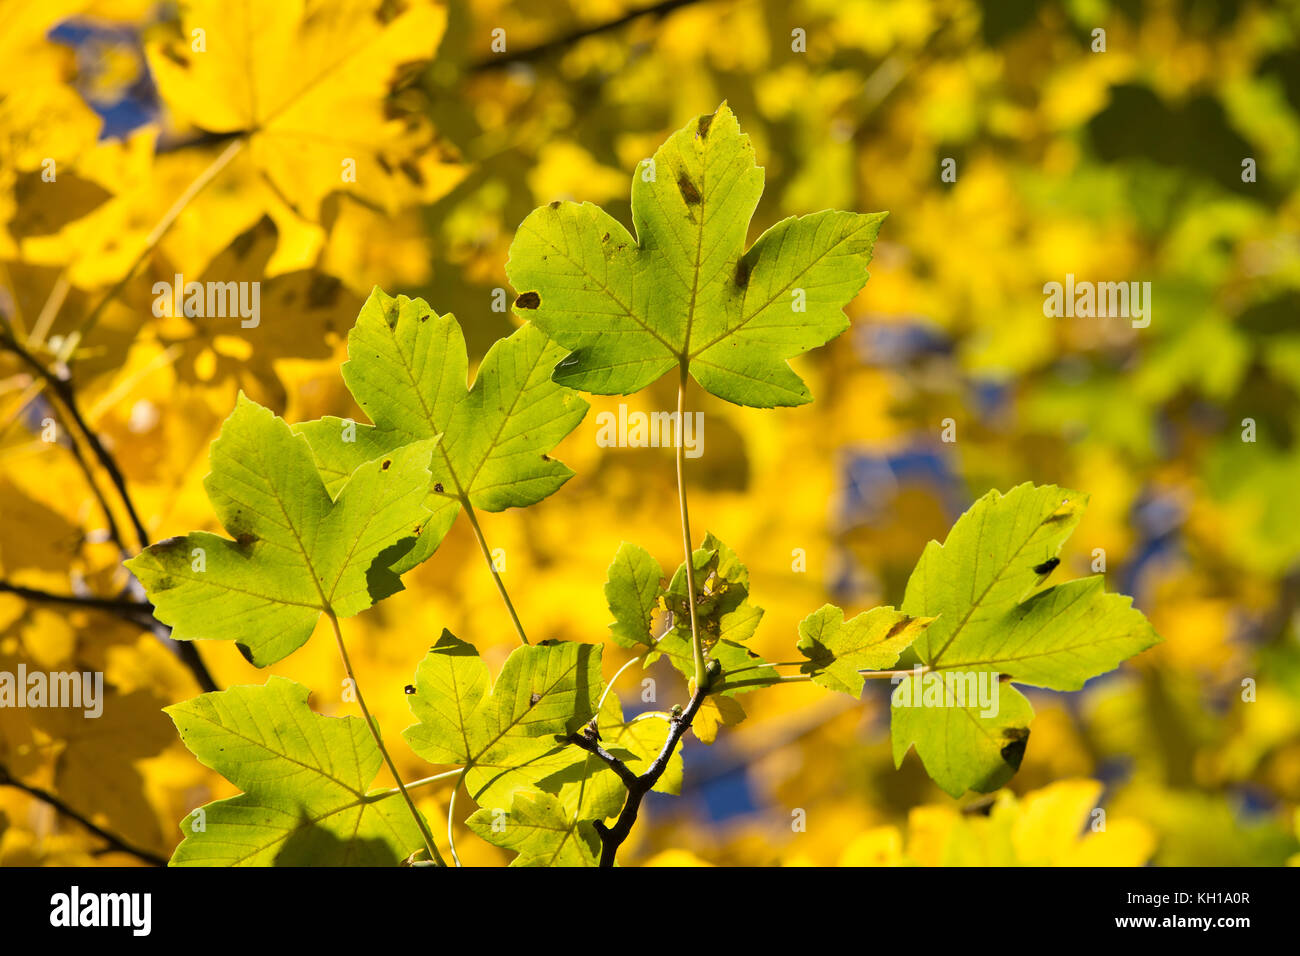 Natural autumn textures: Bright yellow colored Maple or Sycamore leaves lit by sunlight. - Stock Image